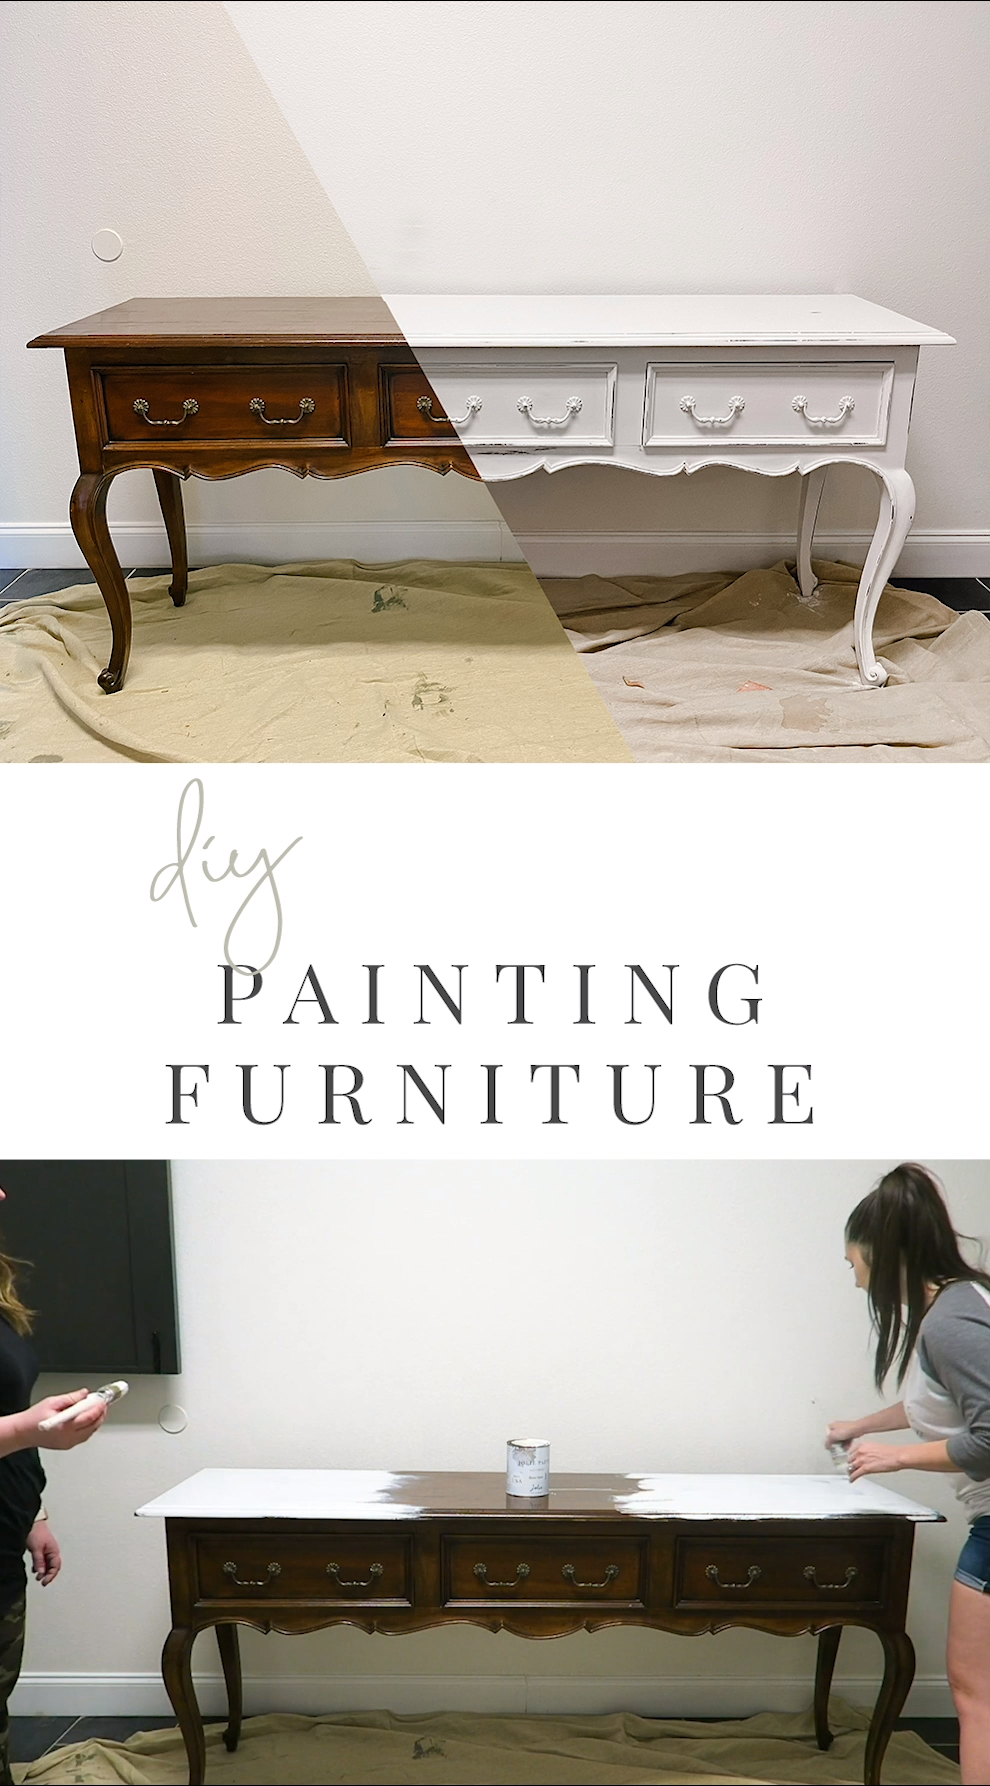 How to Paint Furniture DIY - Chalkpaint - Refinish Furniture - Paint Old Furniture - Farmhouse Furniture - Furniture Flip - Upcycled - Jolie Paint - Dove Gray - Rustic Furniture - How to